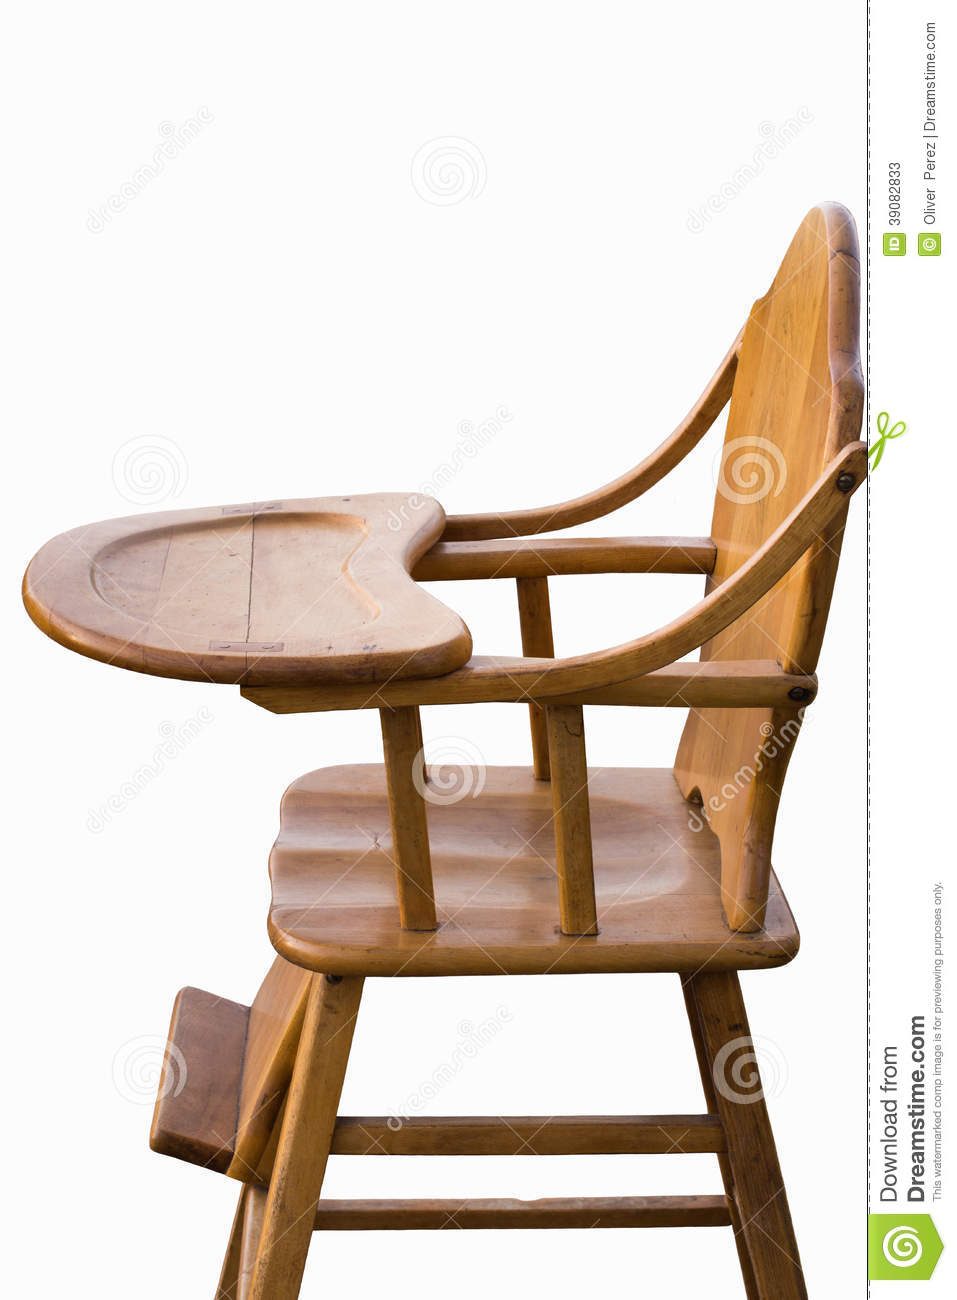 Wooden highchair white background stock image image of for White childrens chair